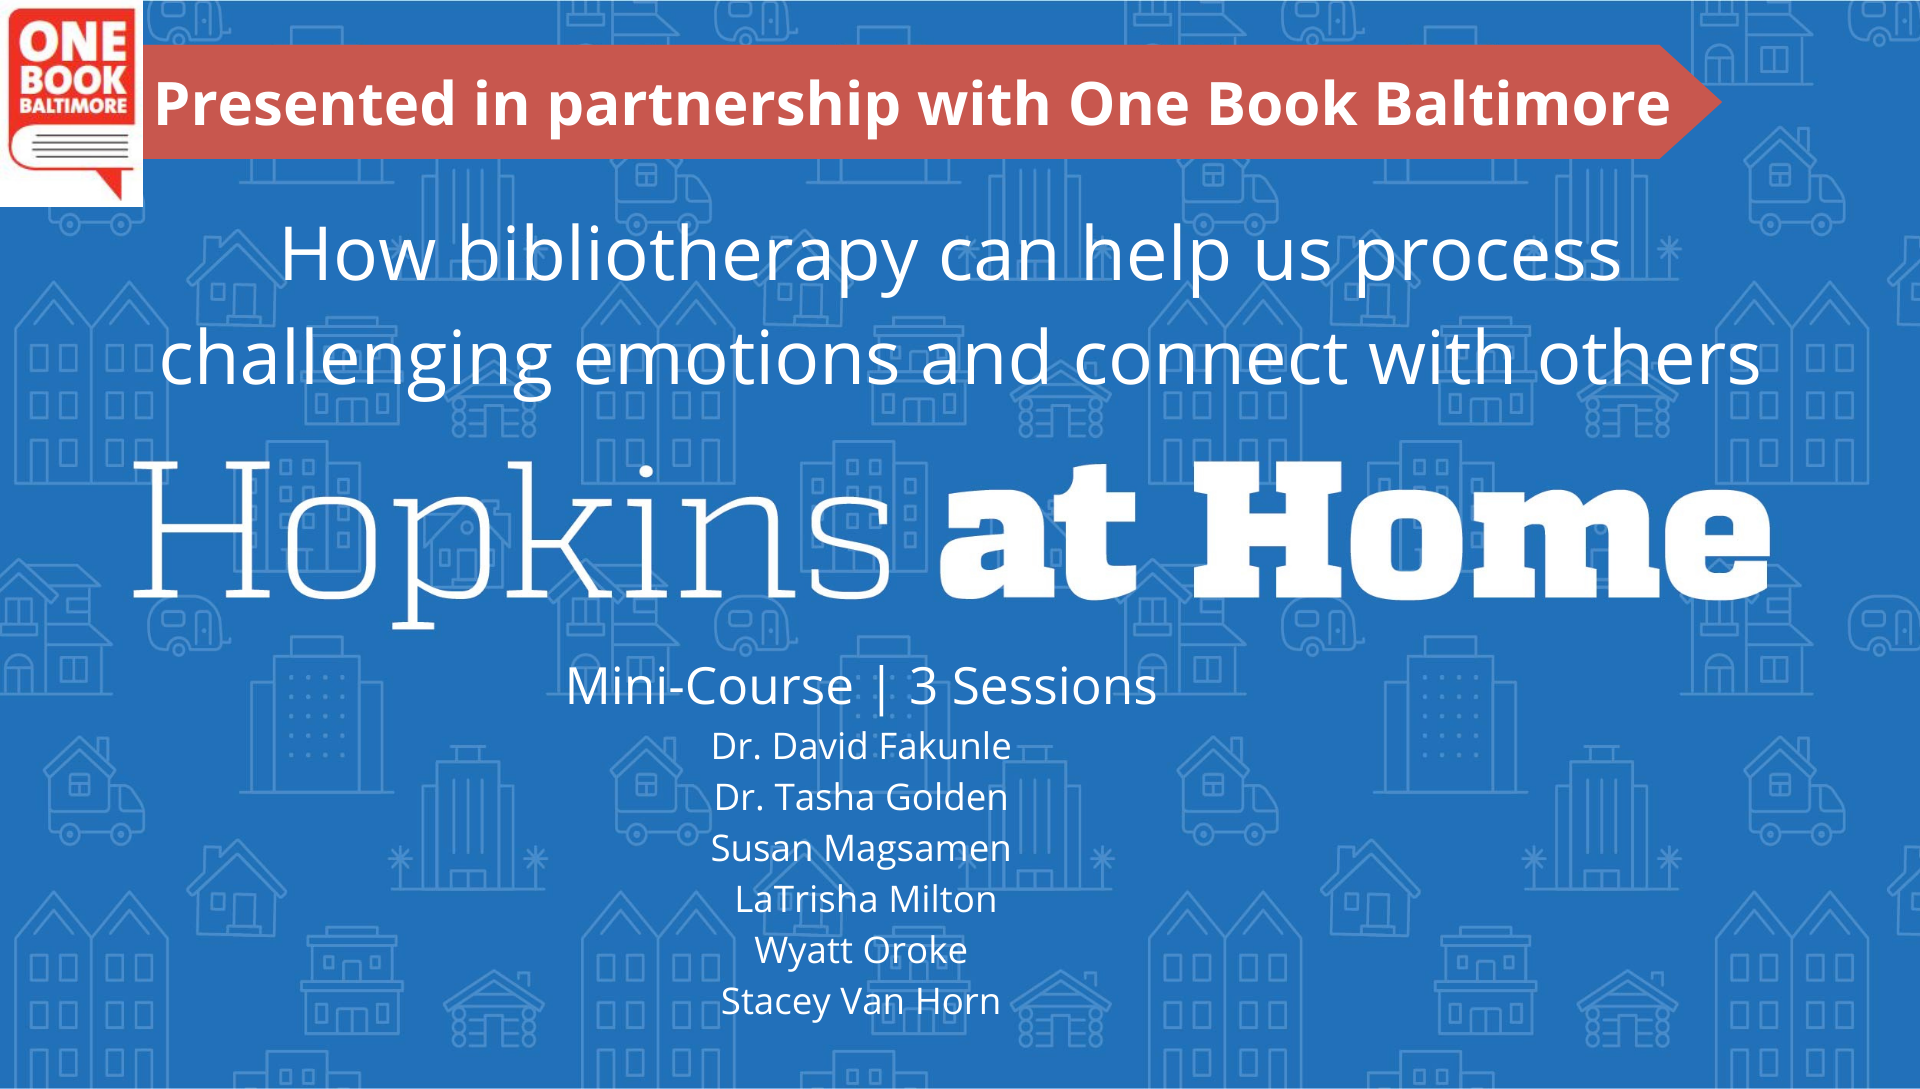 How bibliotherapy can help us process challenging emotions and connect with others header image